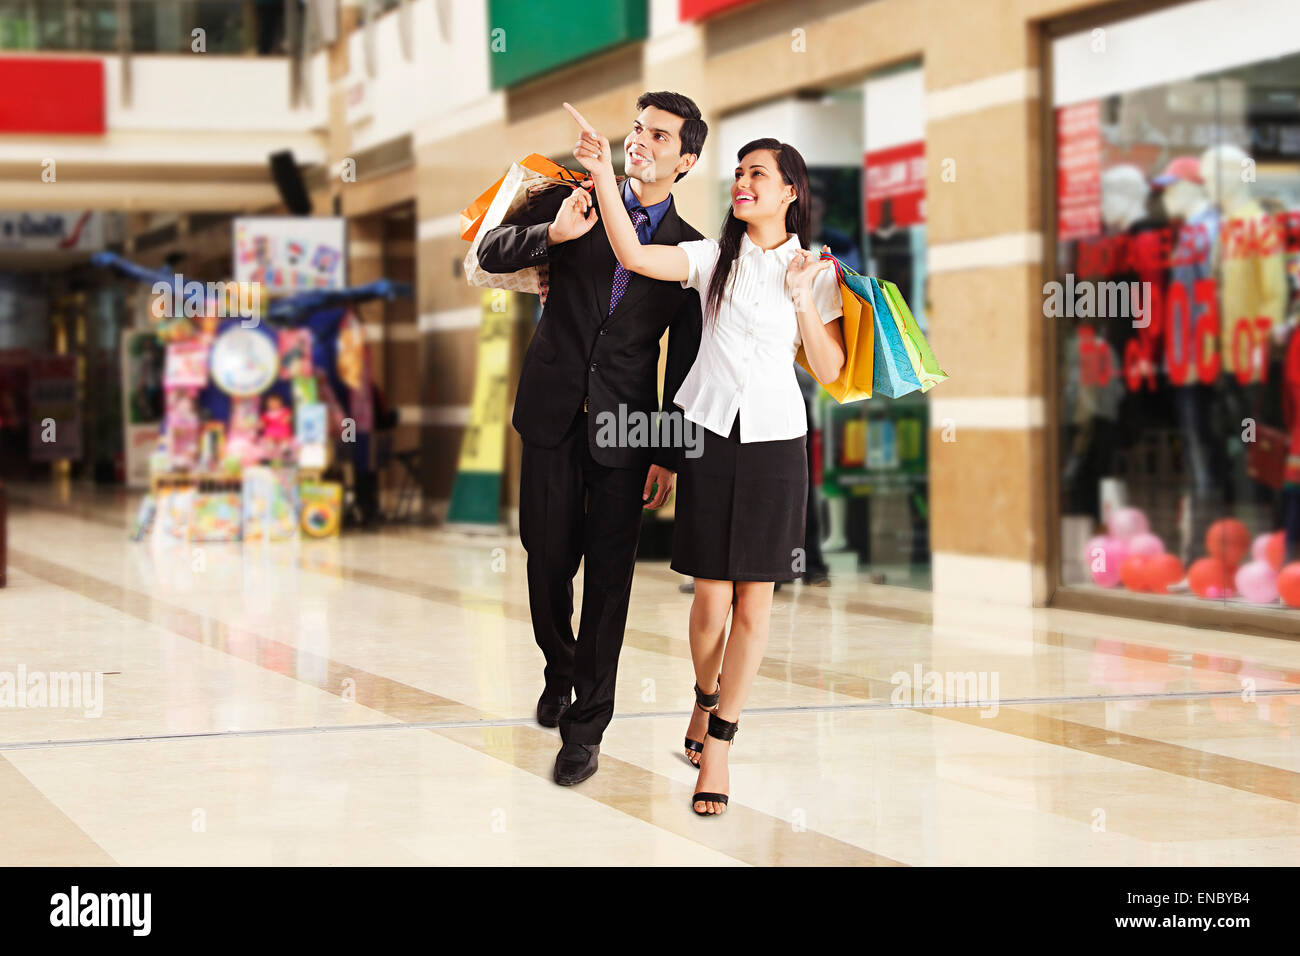 2 Indian Business Couple Mall Shopping Stock Photo